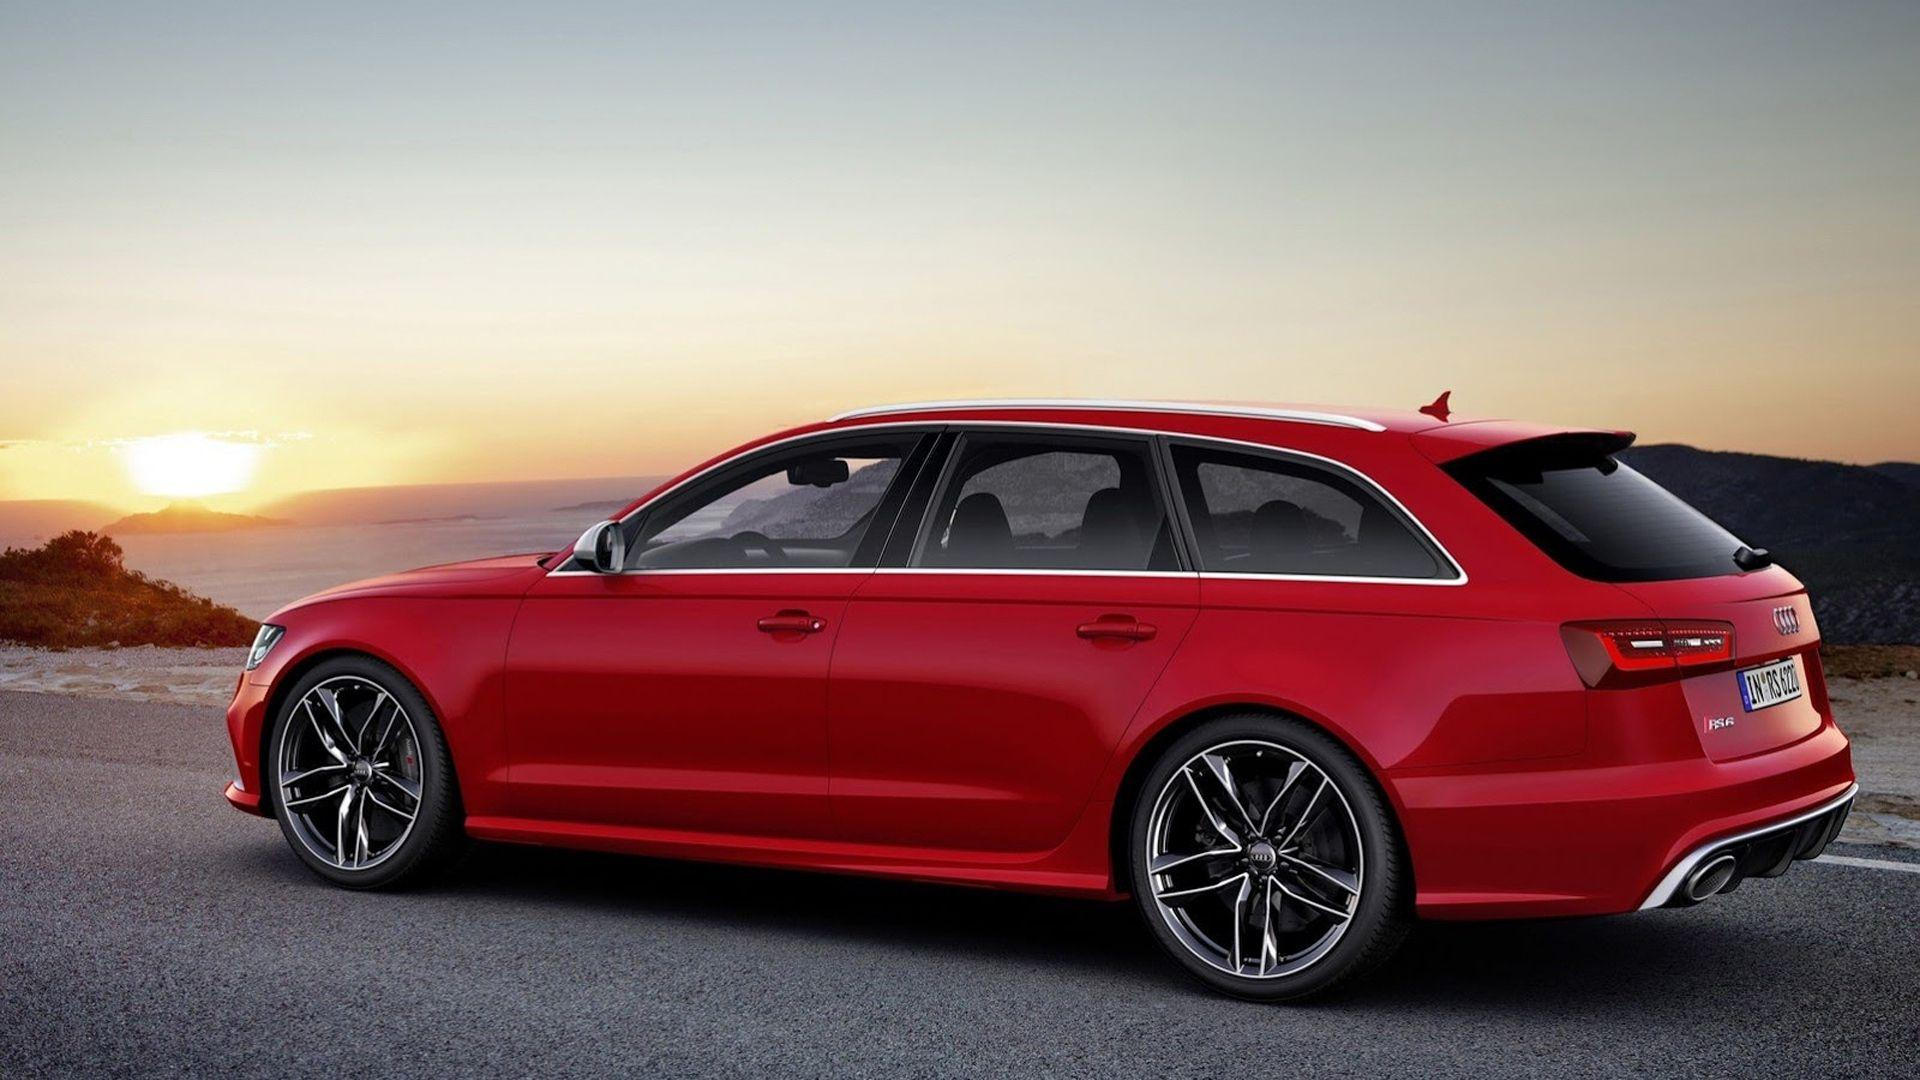 Download Wallpaper 1920x1080 Audi, V-8, Rs6 avant, Red, Side view ...